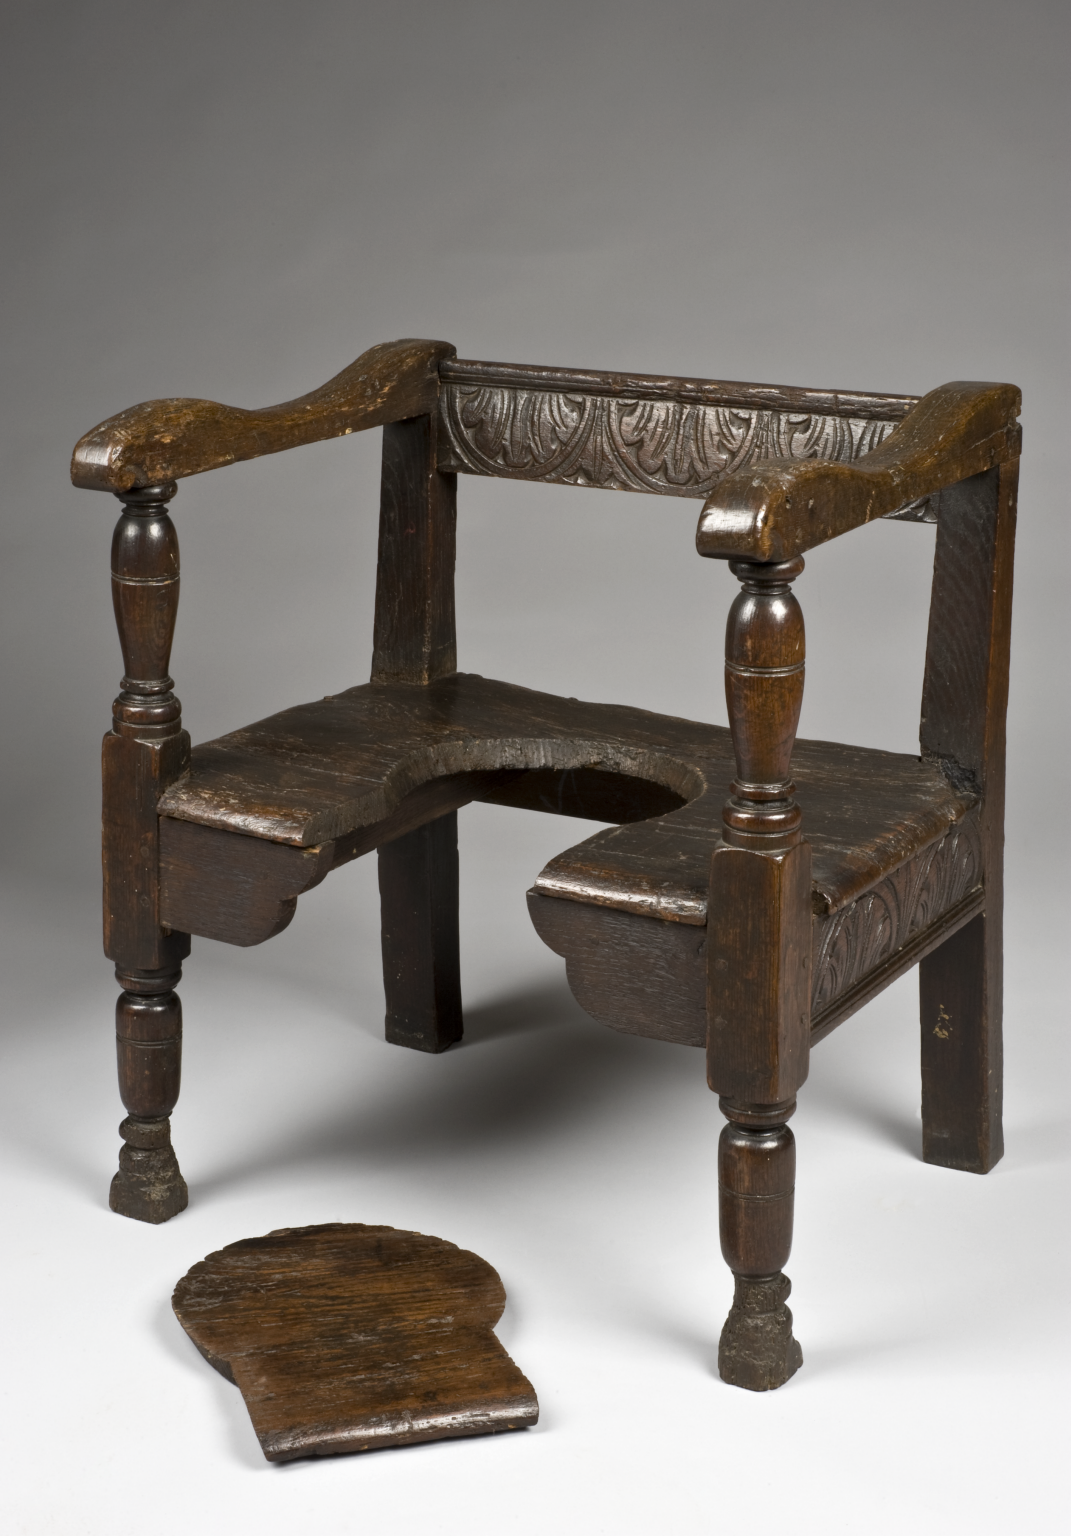 Parturition (birthing) chair, England, when I'm in labor I definitely want  to be sitting in a hard chair made of wood. - Parturition (birthing) Chair, England, 1601-1700 History Of